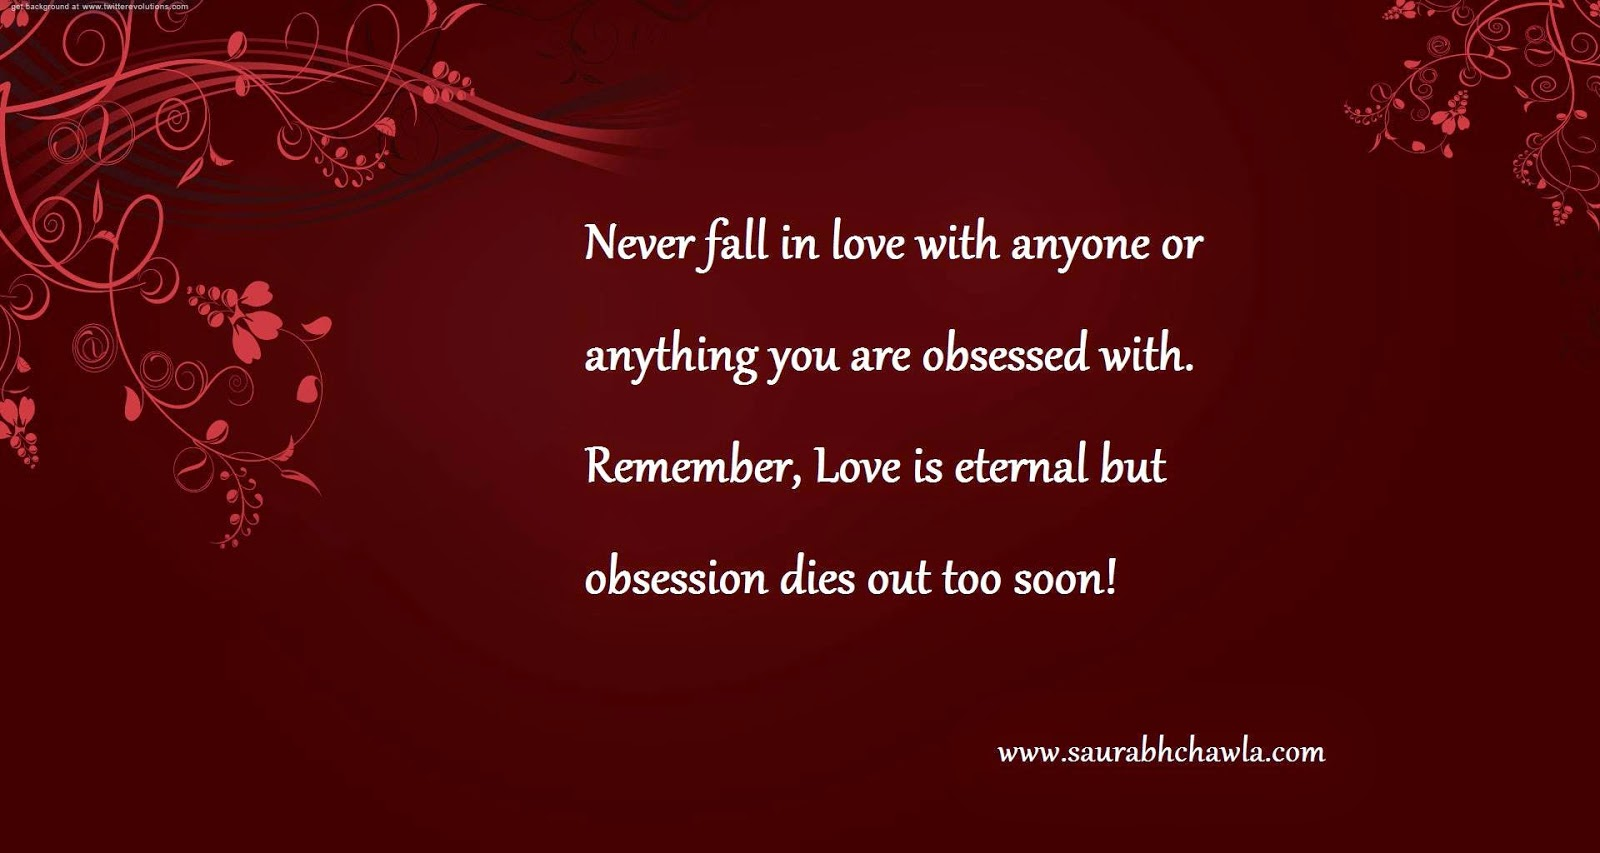 Love and obsession quotes by saurabh chawla